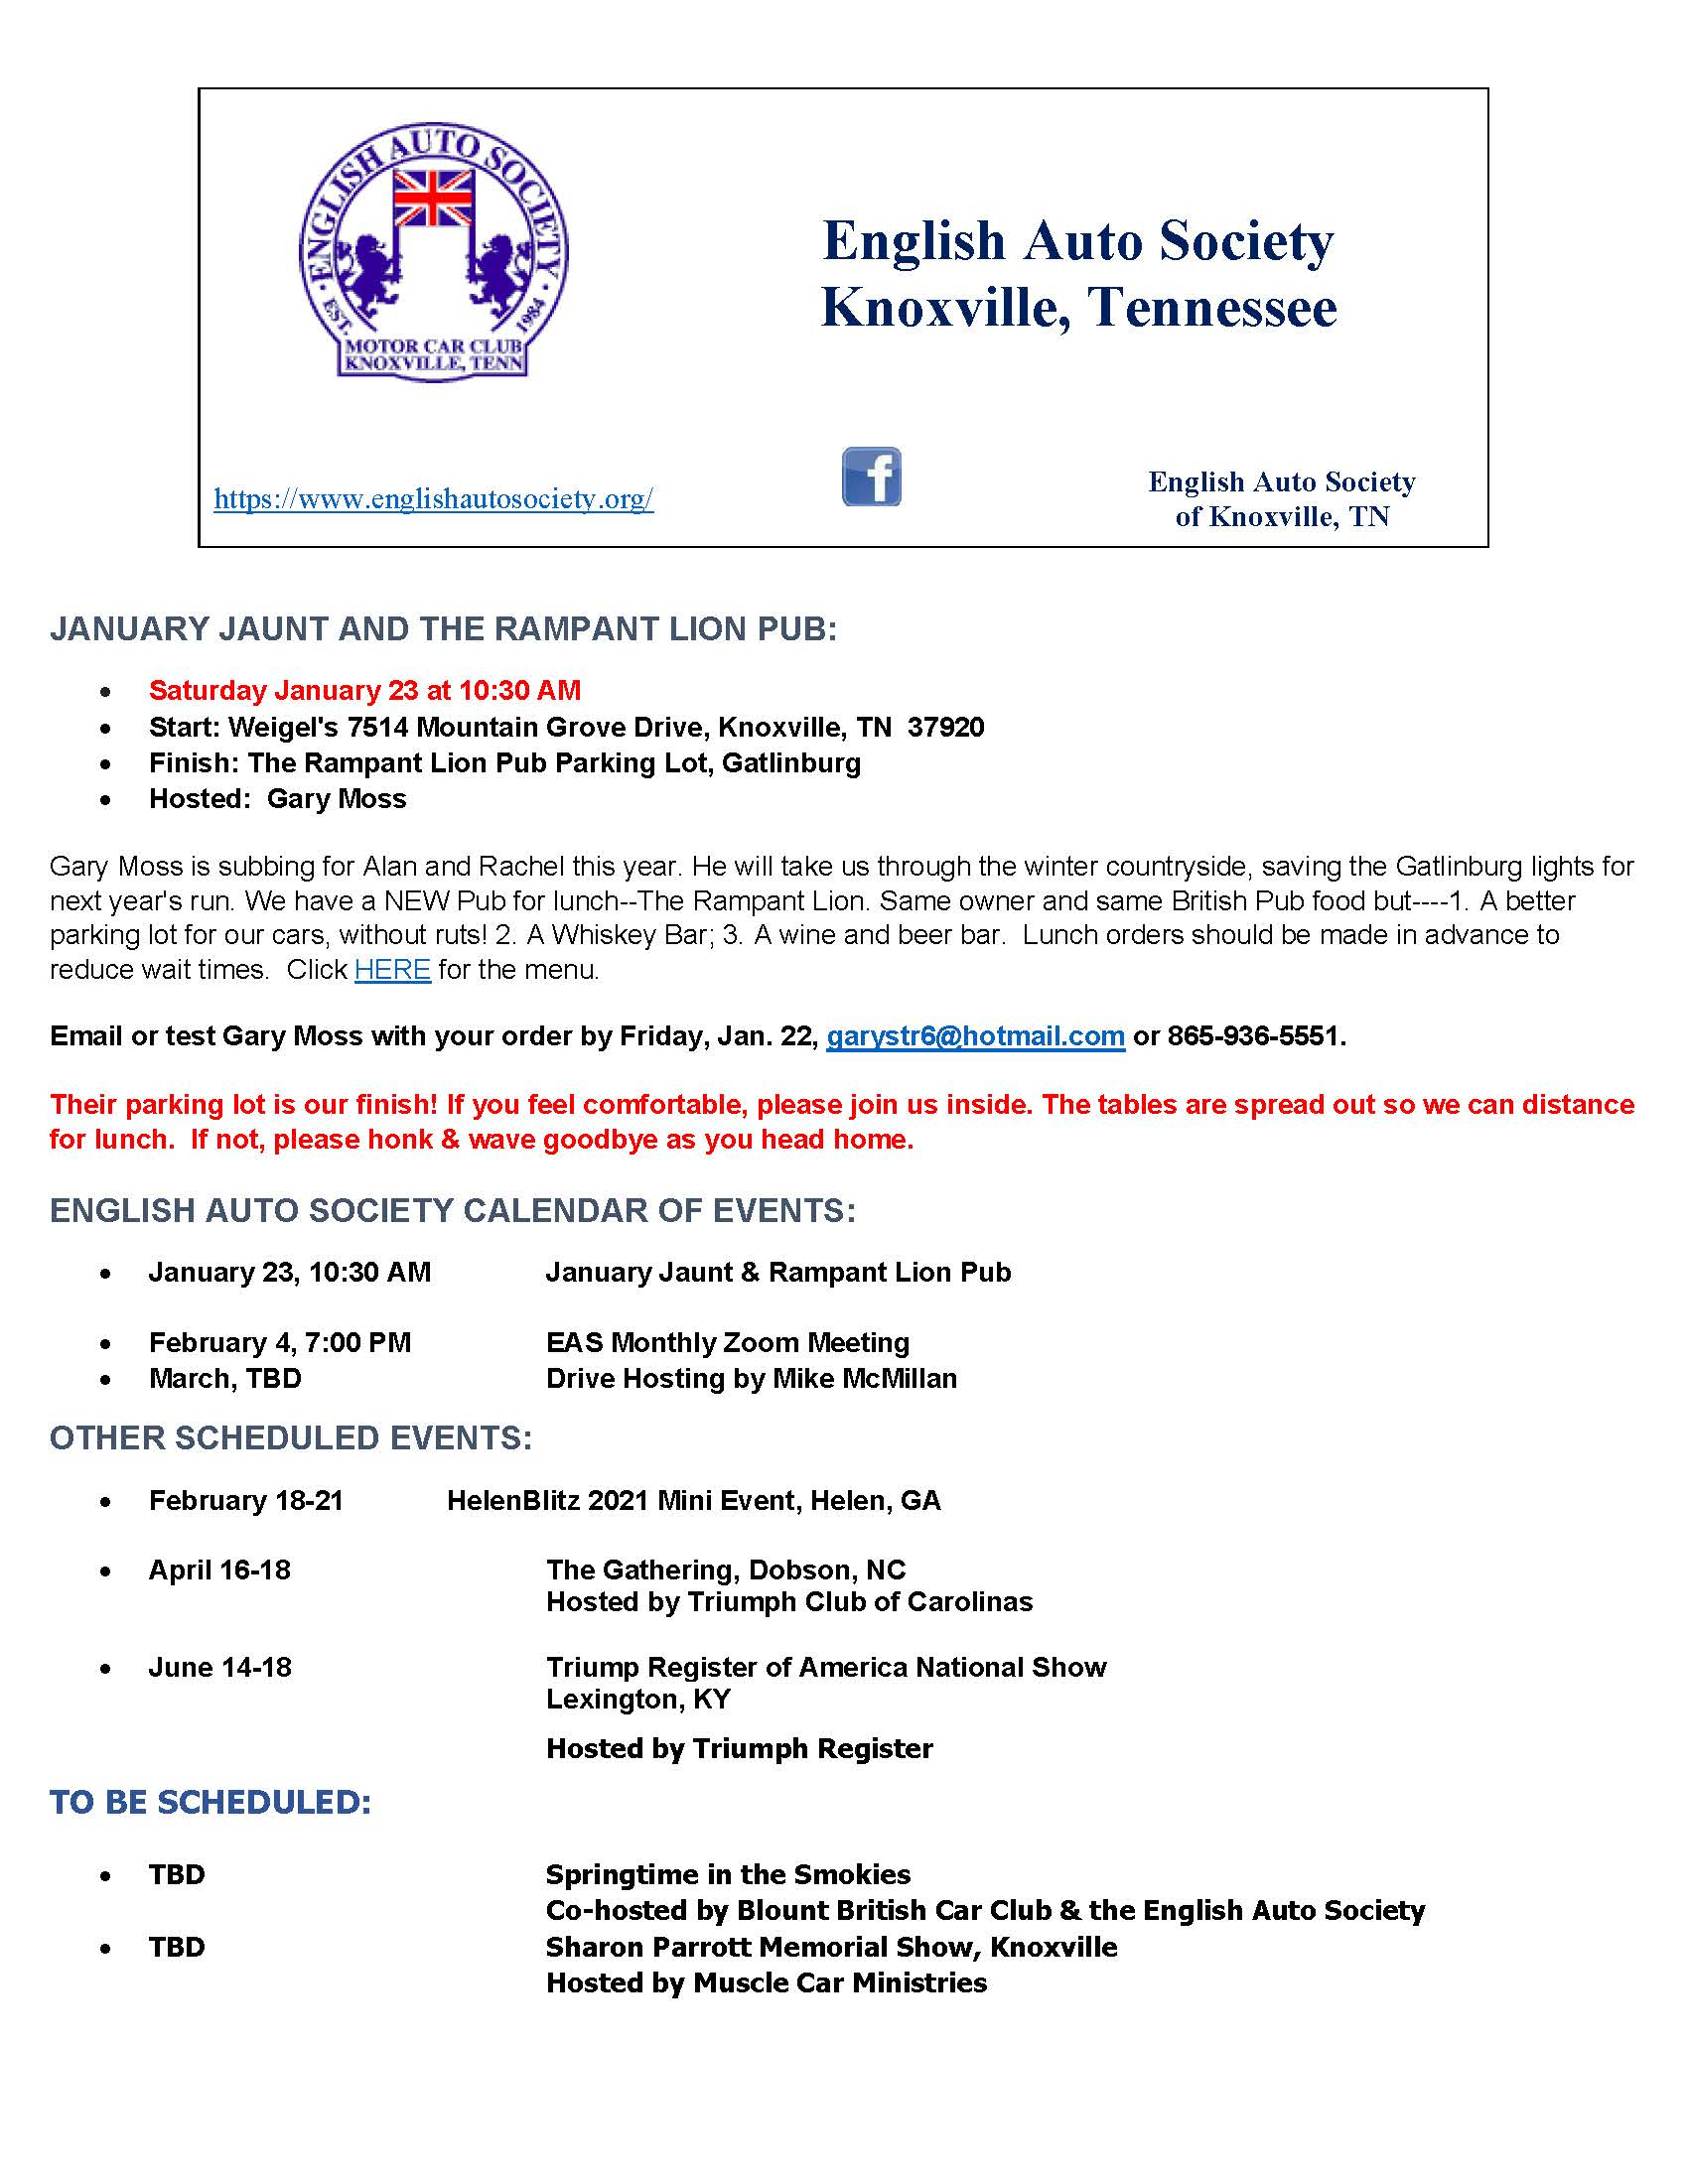 english auto society of knoxville